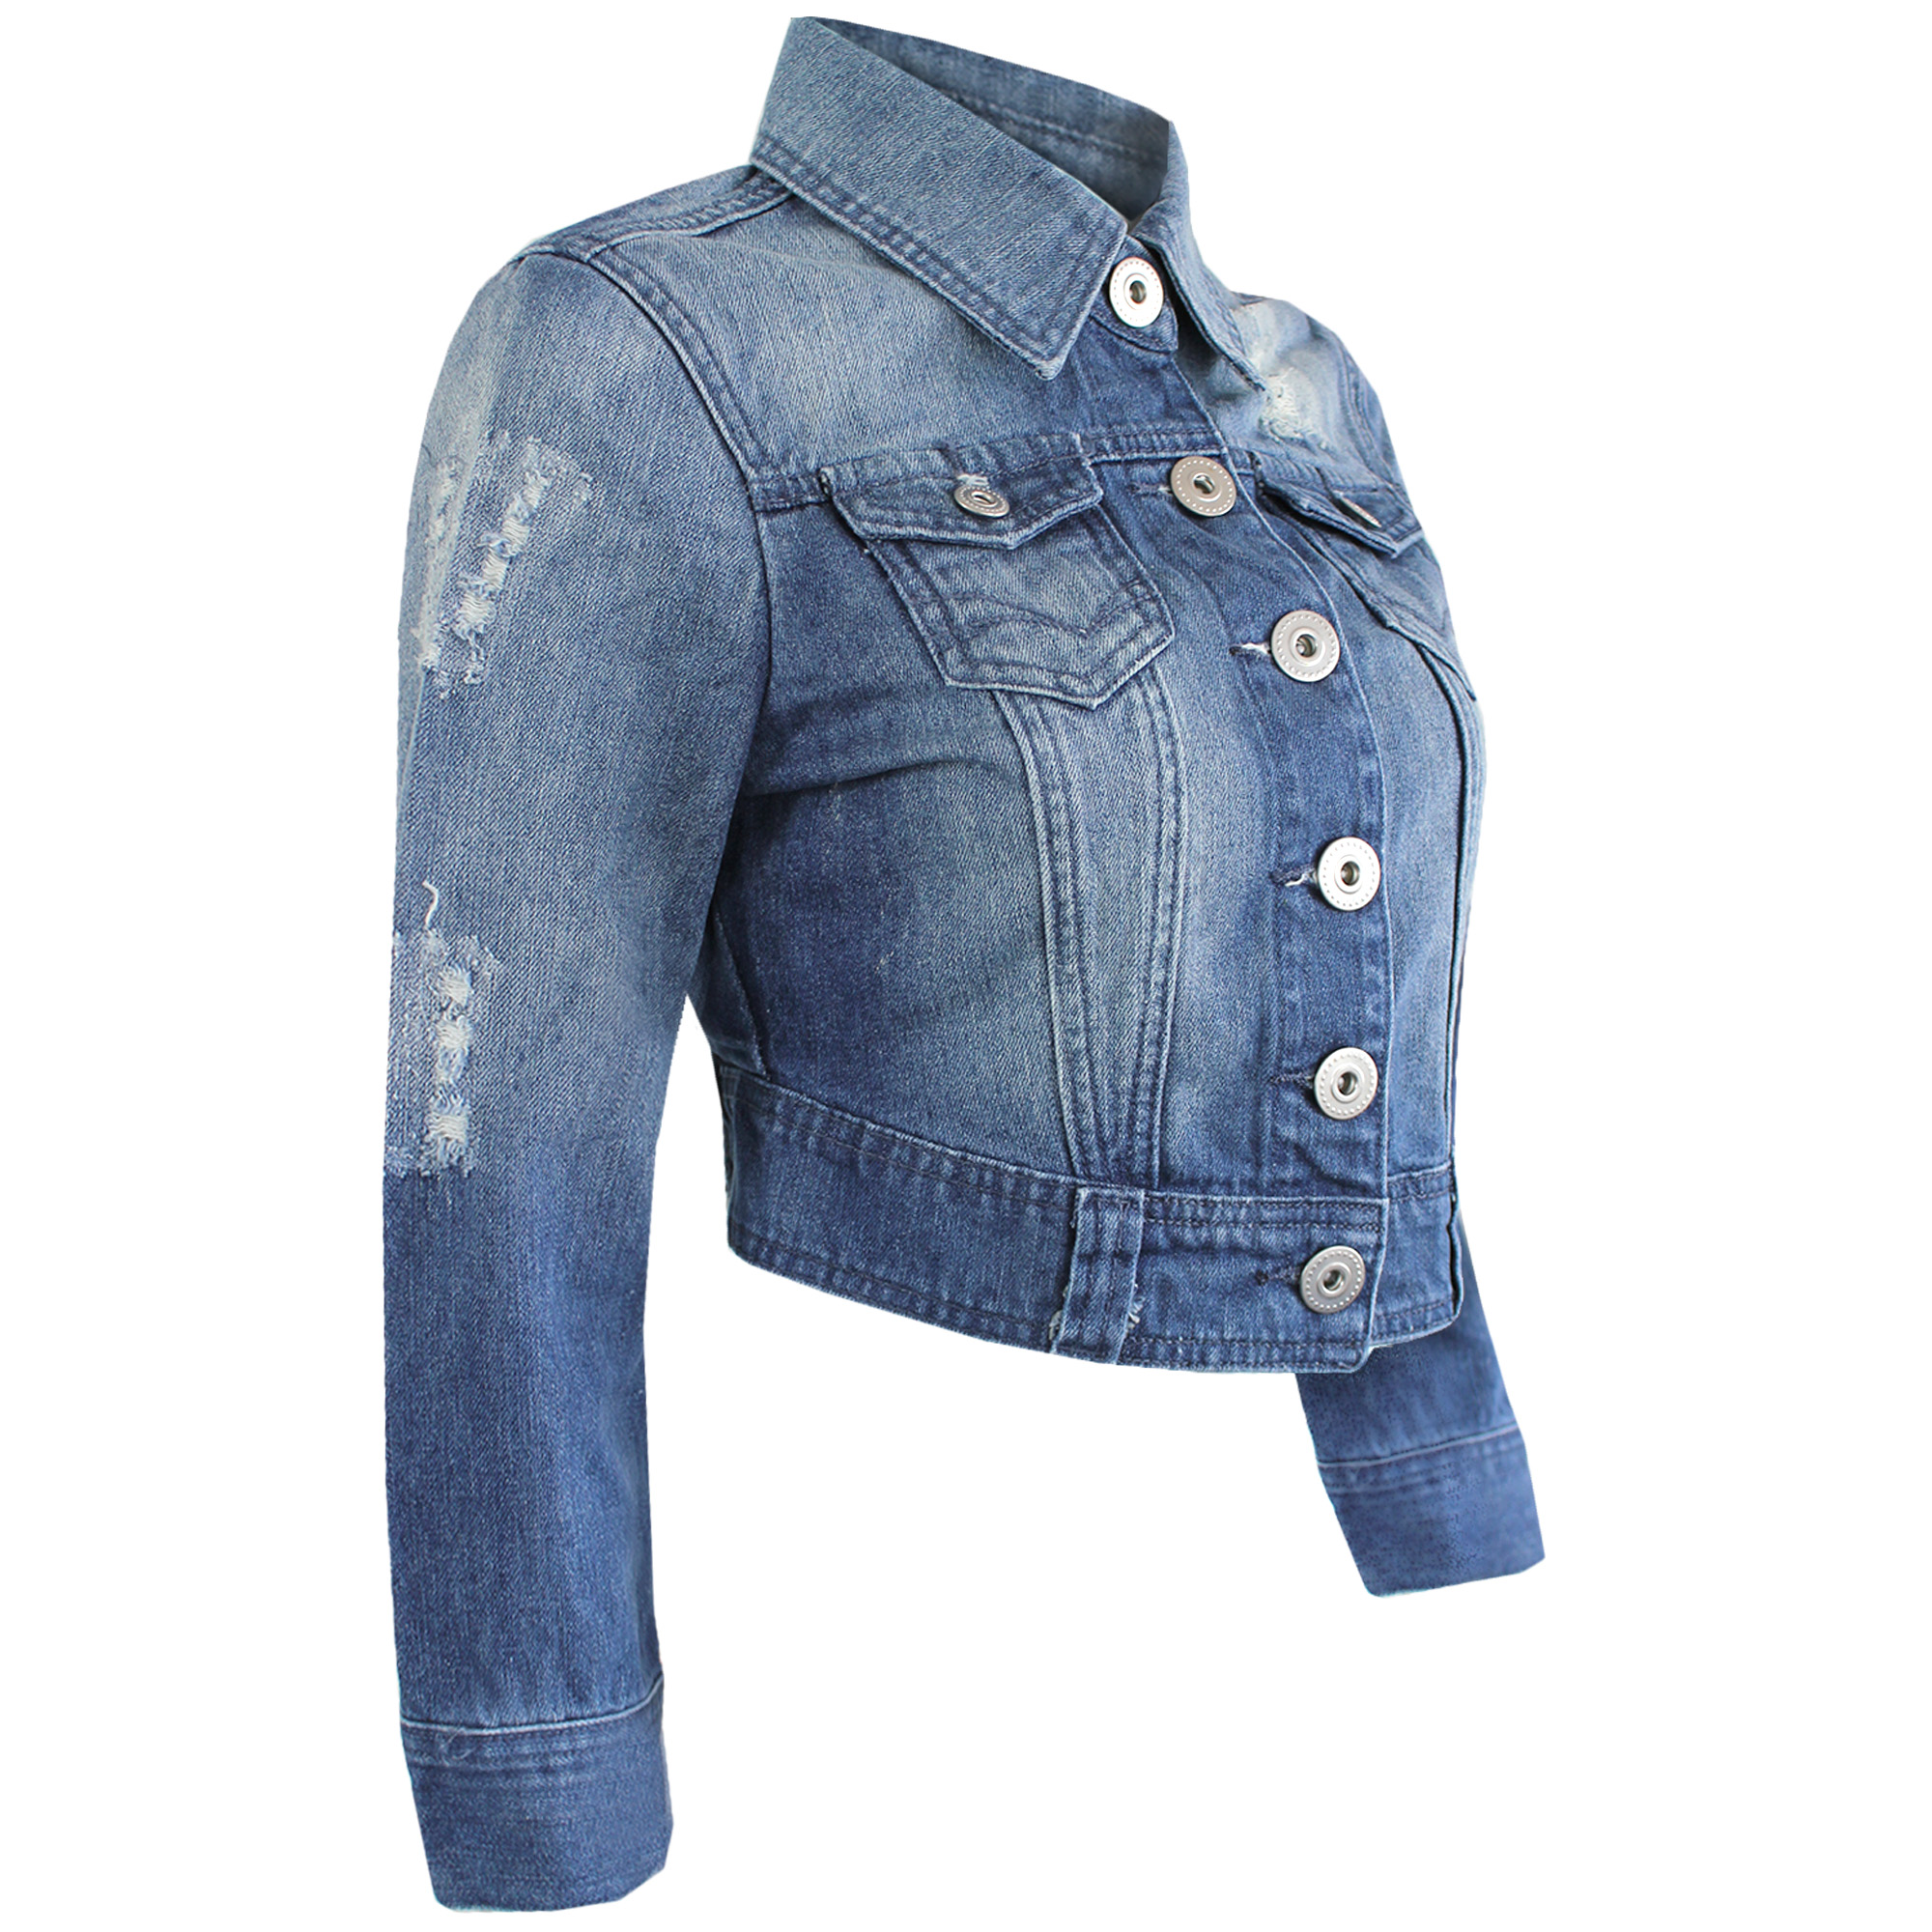 cbf160e97f175 LADIES CROPPED DENIM BLUE WASH JACKET WOMENS FESTIVAL JEANS COAT SHORT  JACKETS